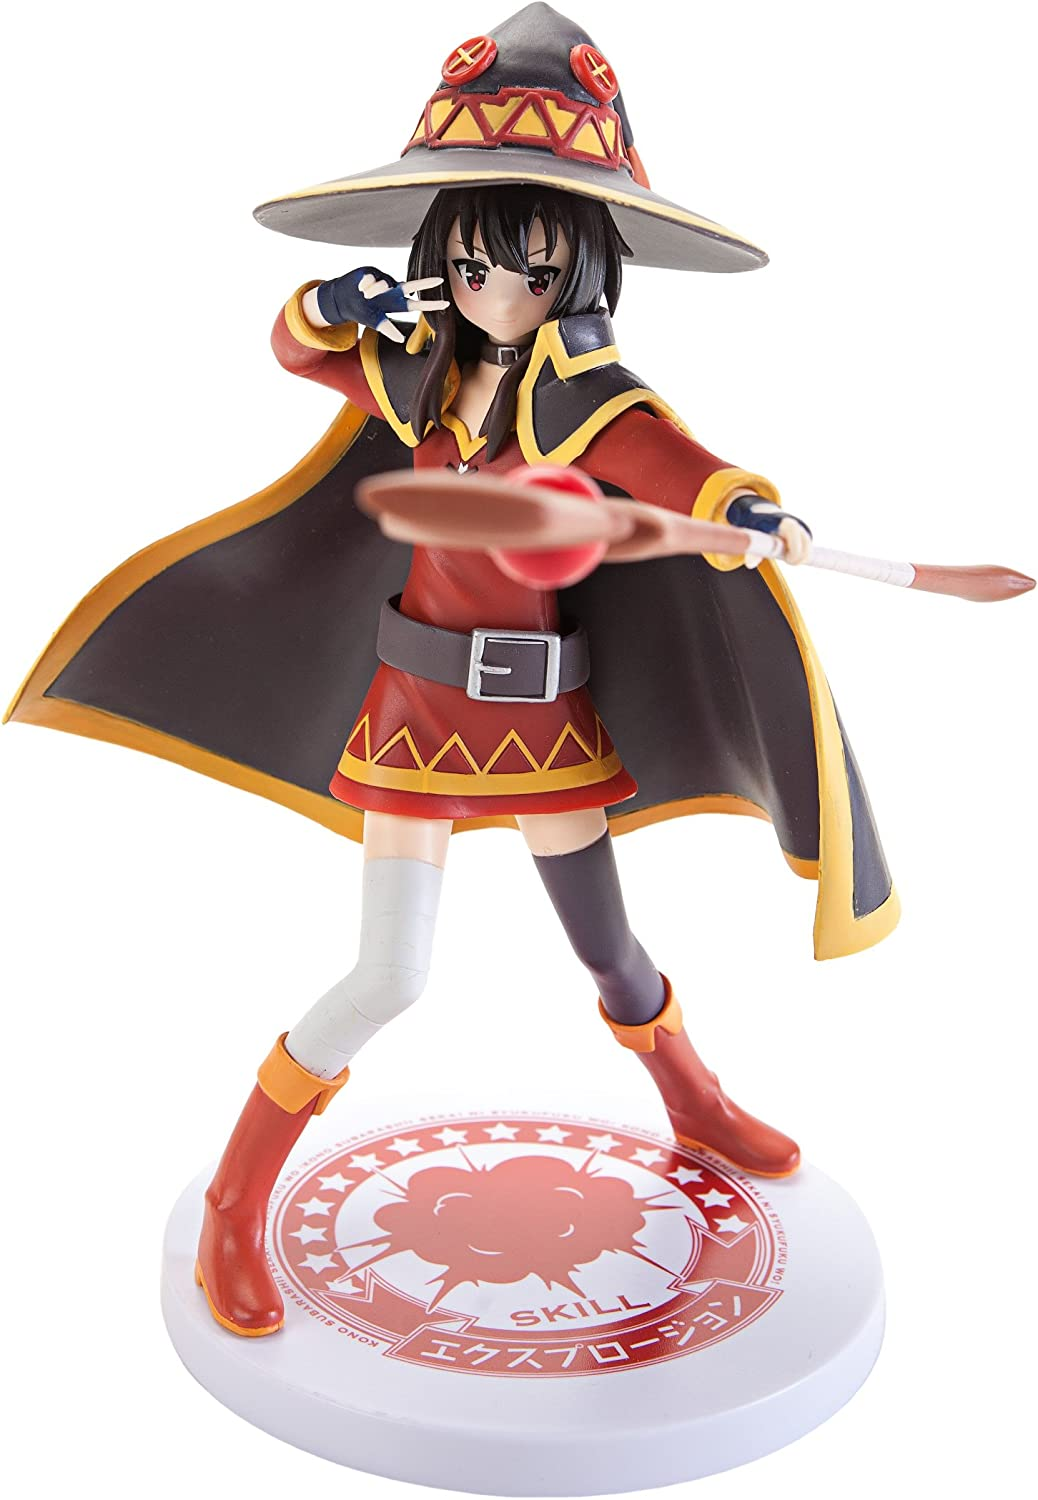 A blessing to this wonderful world  PM figure Megumin